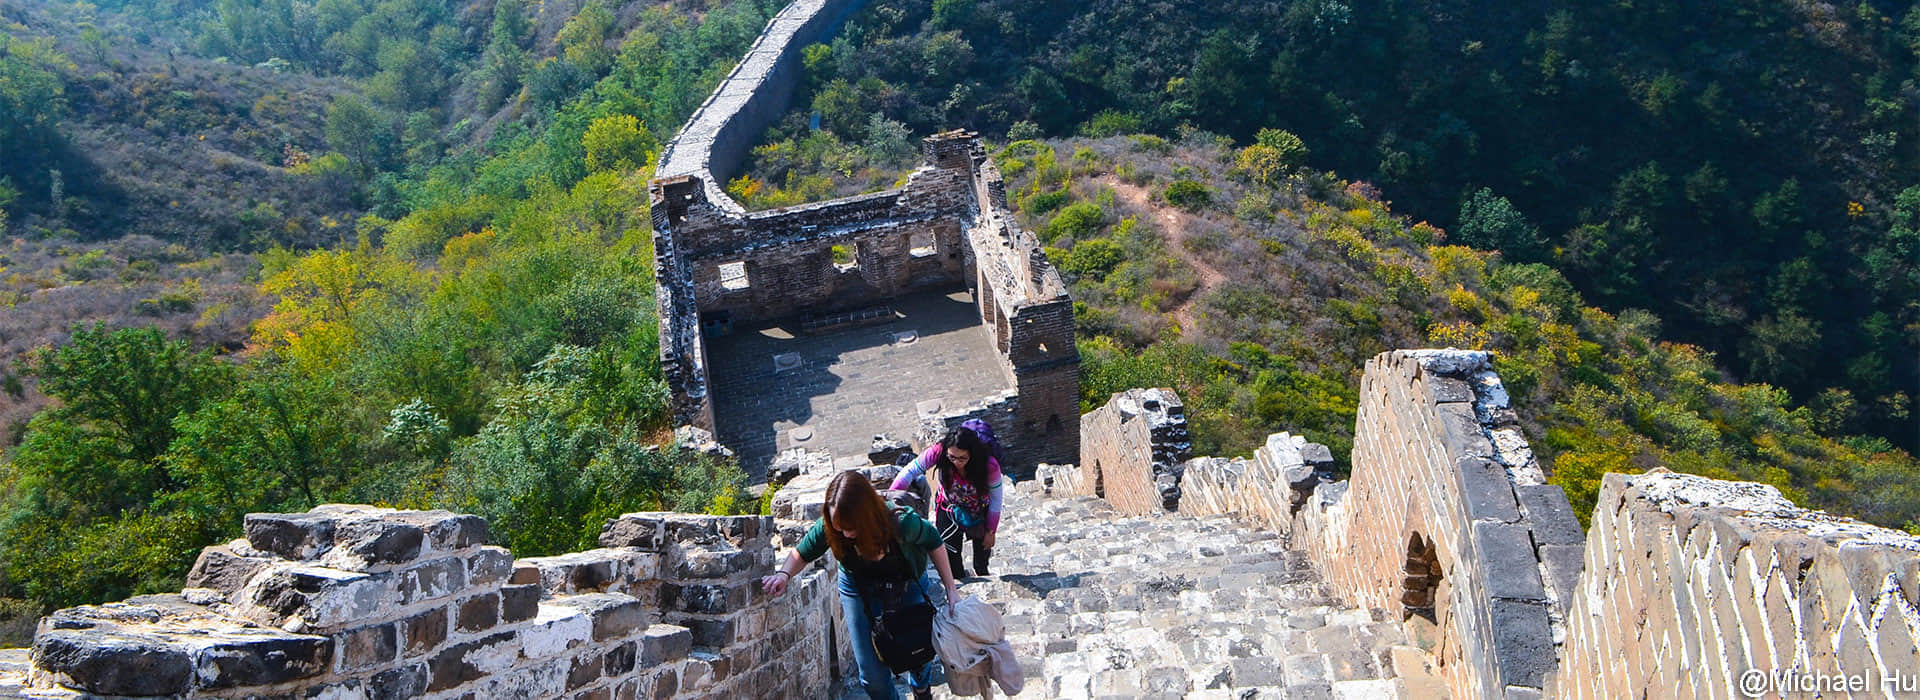 Hiking the Original Great Wall Sections in Beijing